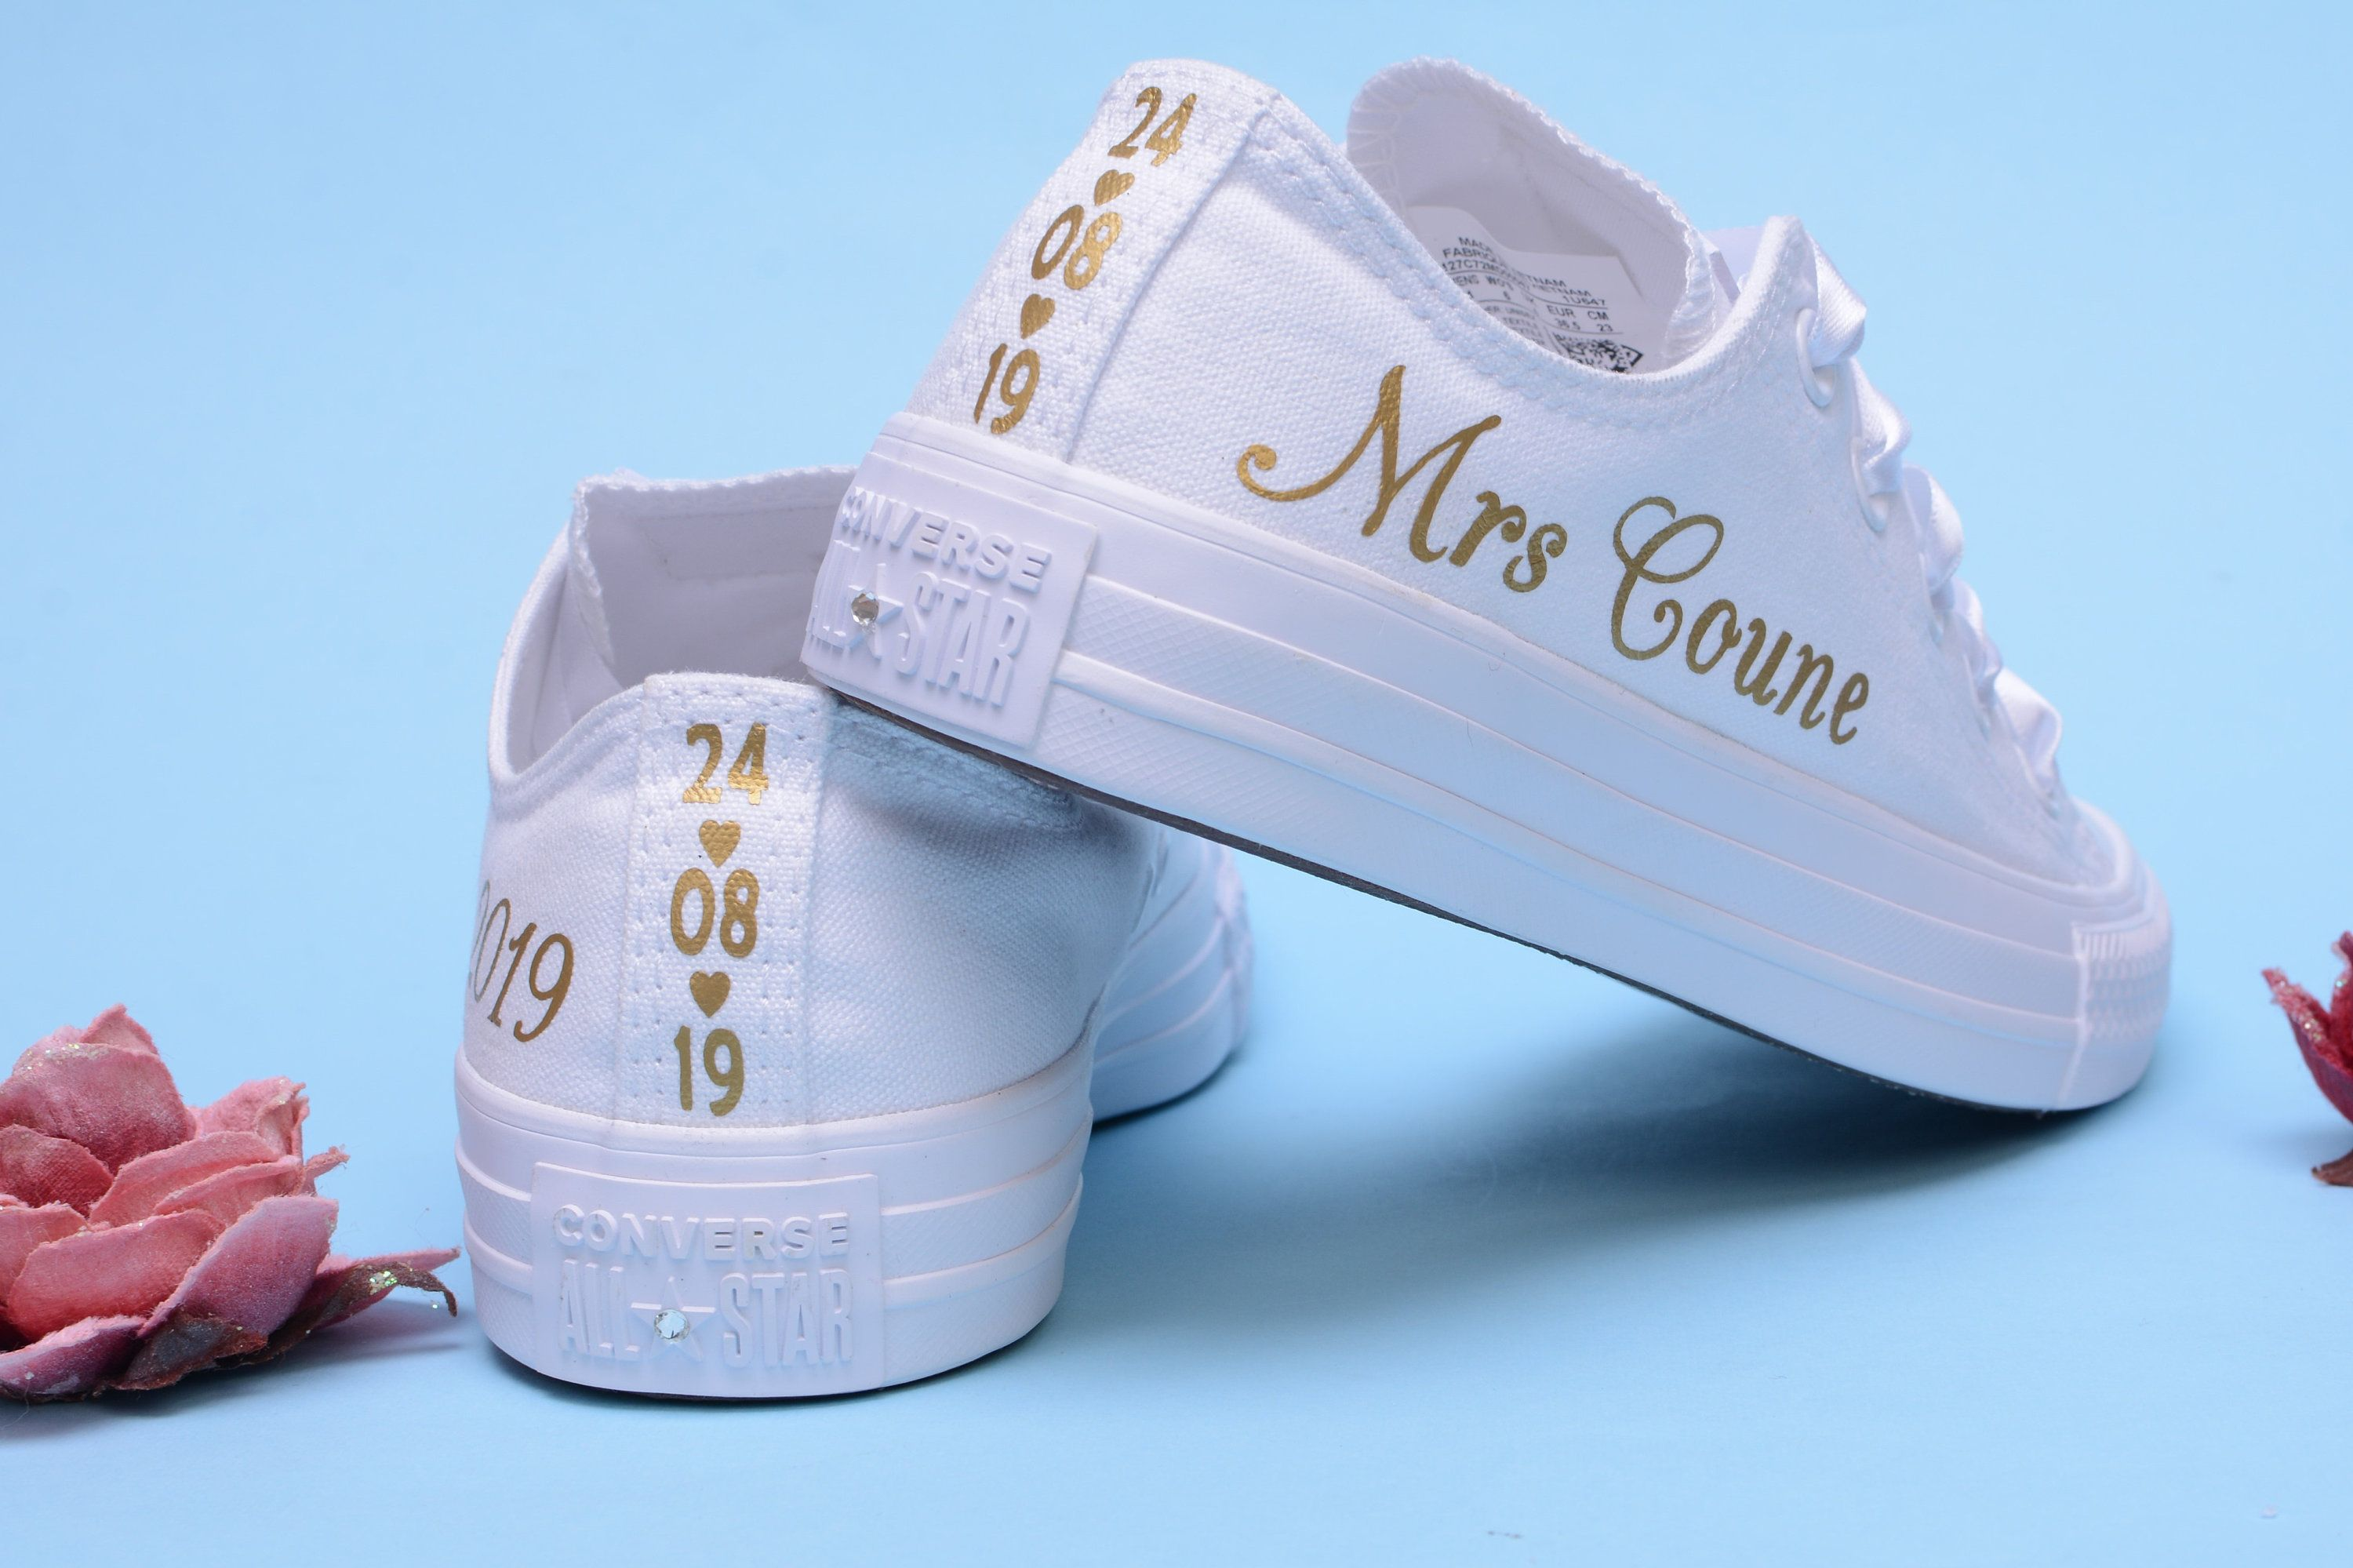 Details about Personalised Rose Gold Foil Wedding Converse Trainers For Bride, Sneakers Bridal